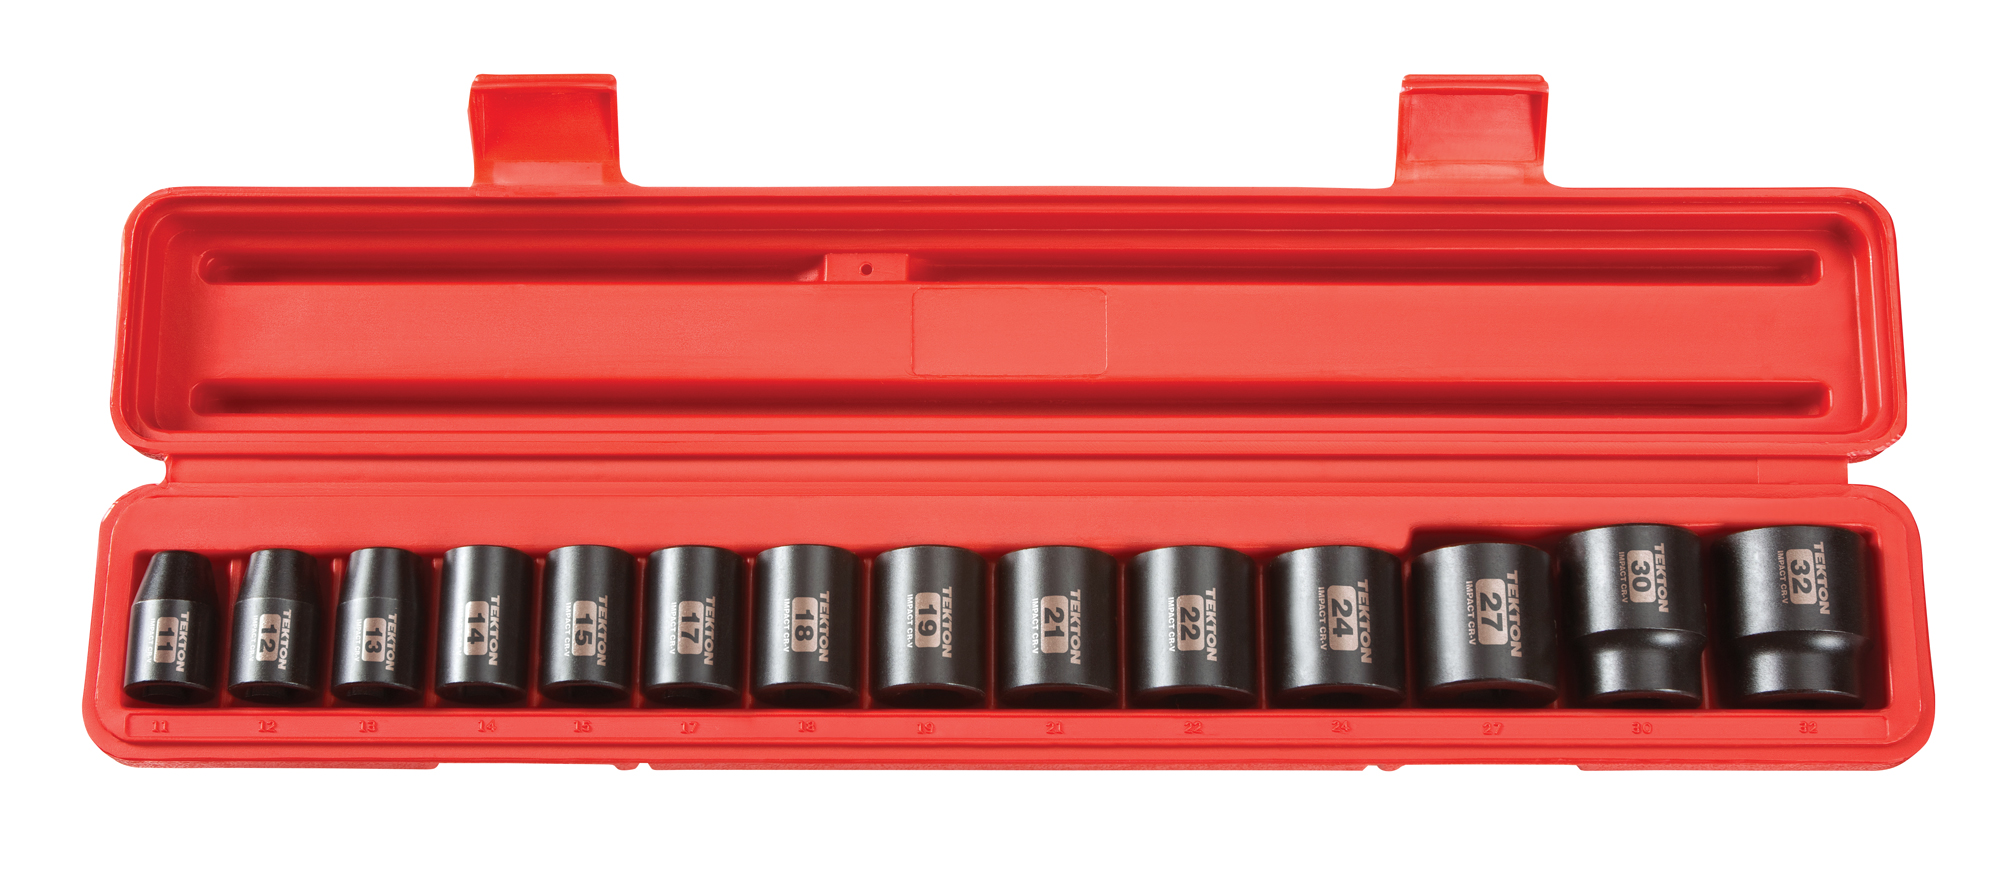 TEKTON 1 2-Inch Drive Shallow Impact Socket Set, Metric, Cr-V, 6-Point, 11 mm 32 mm,... by TEKTON